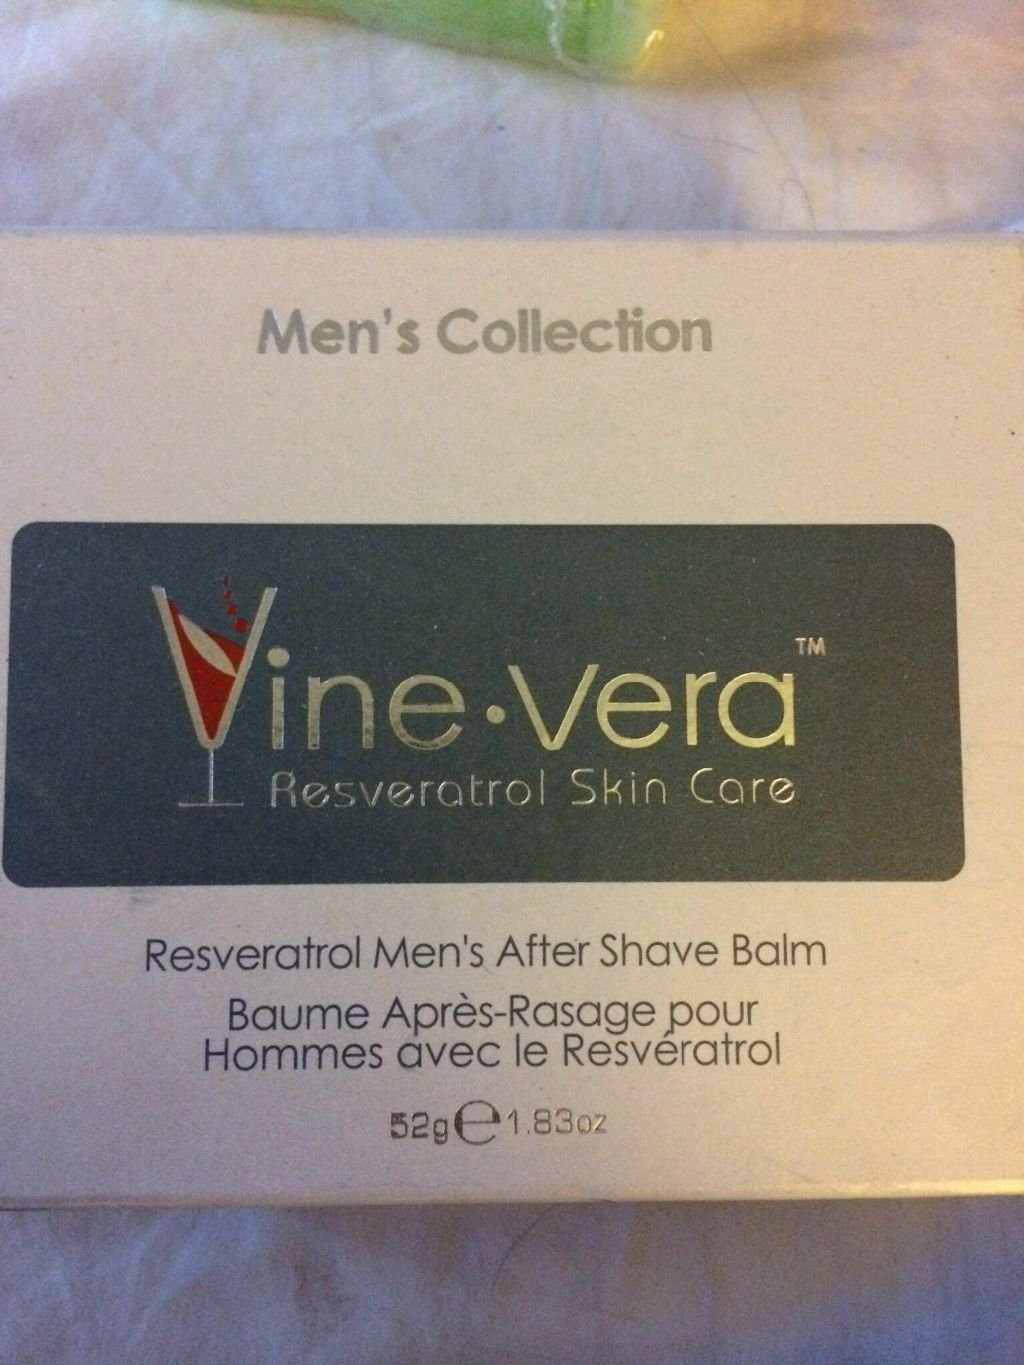 Resveratol Mens after shave balm by Vine Vera